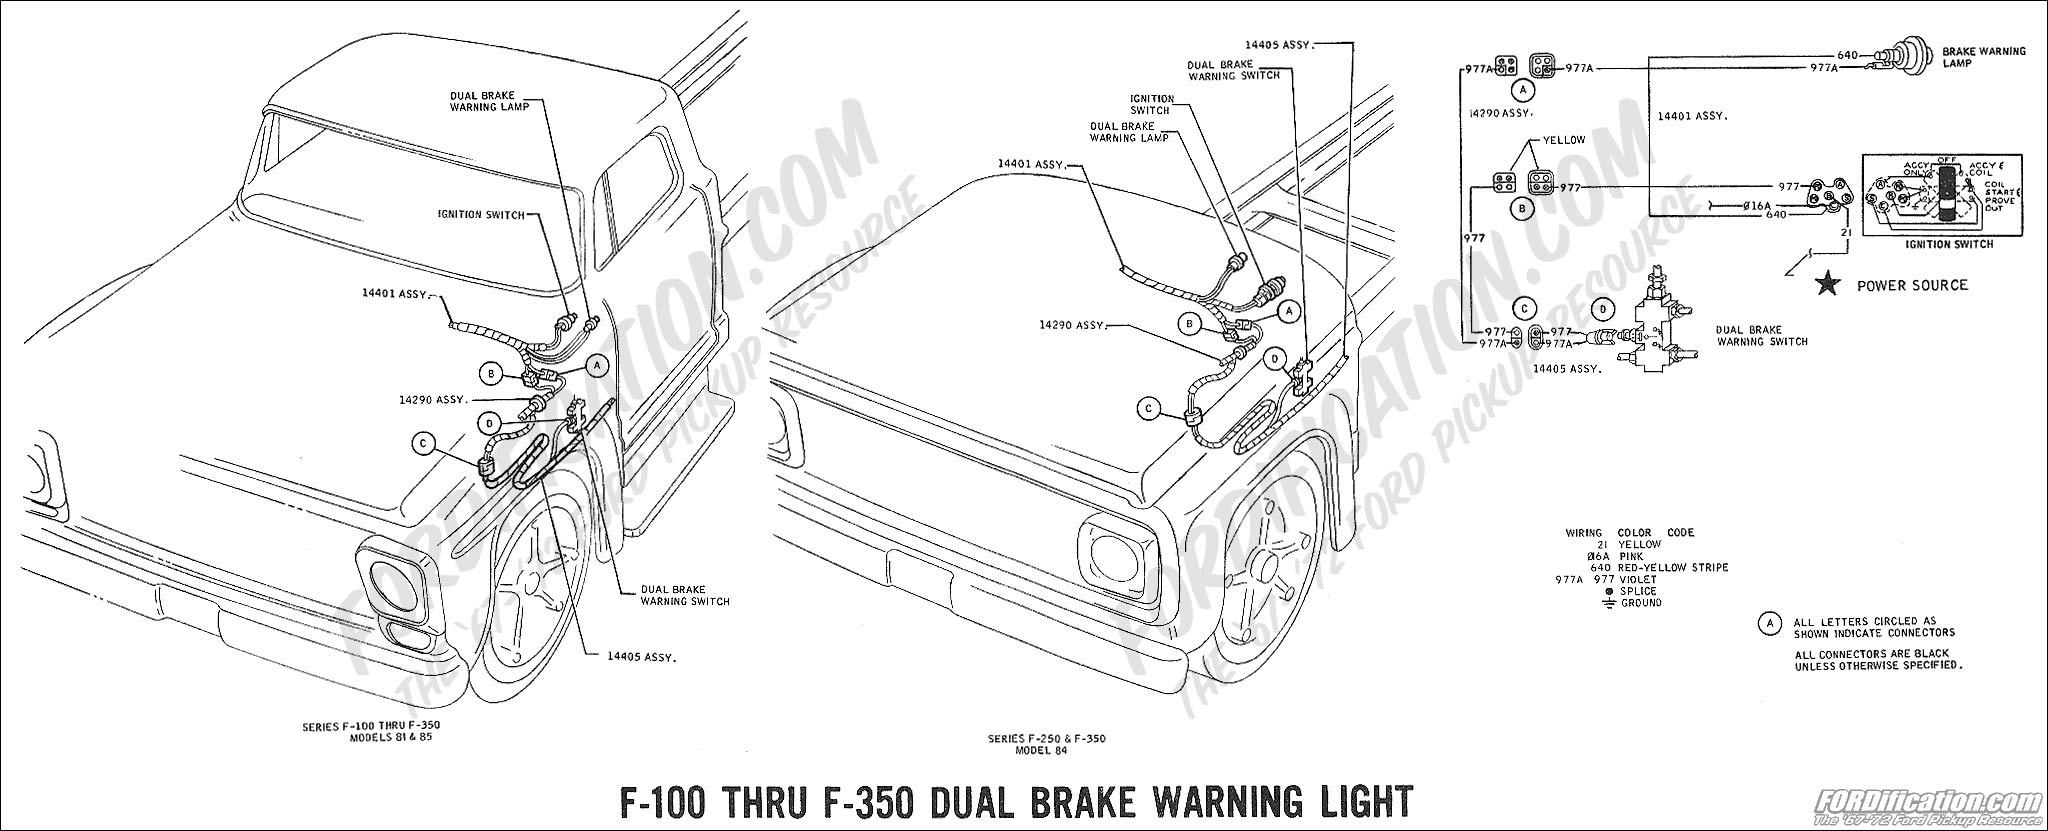 Ford Truck Technical Drawings And Schematics Section H Wiring 1989 Ranger Two Wheel Drive Fuse Box Diagram 1969 F 100 Thru 350 Dual Brake Warning Light